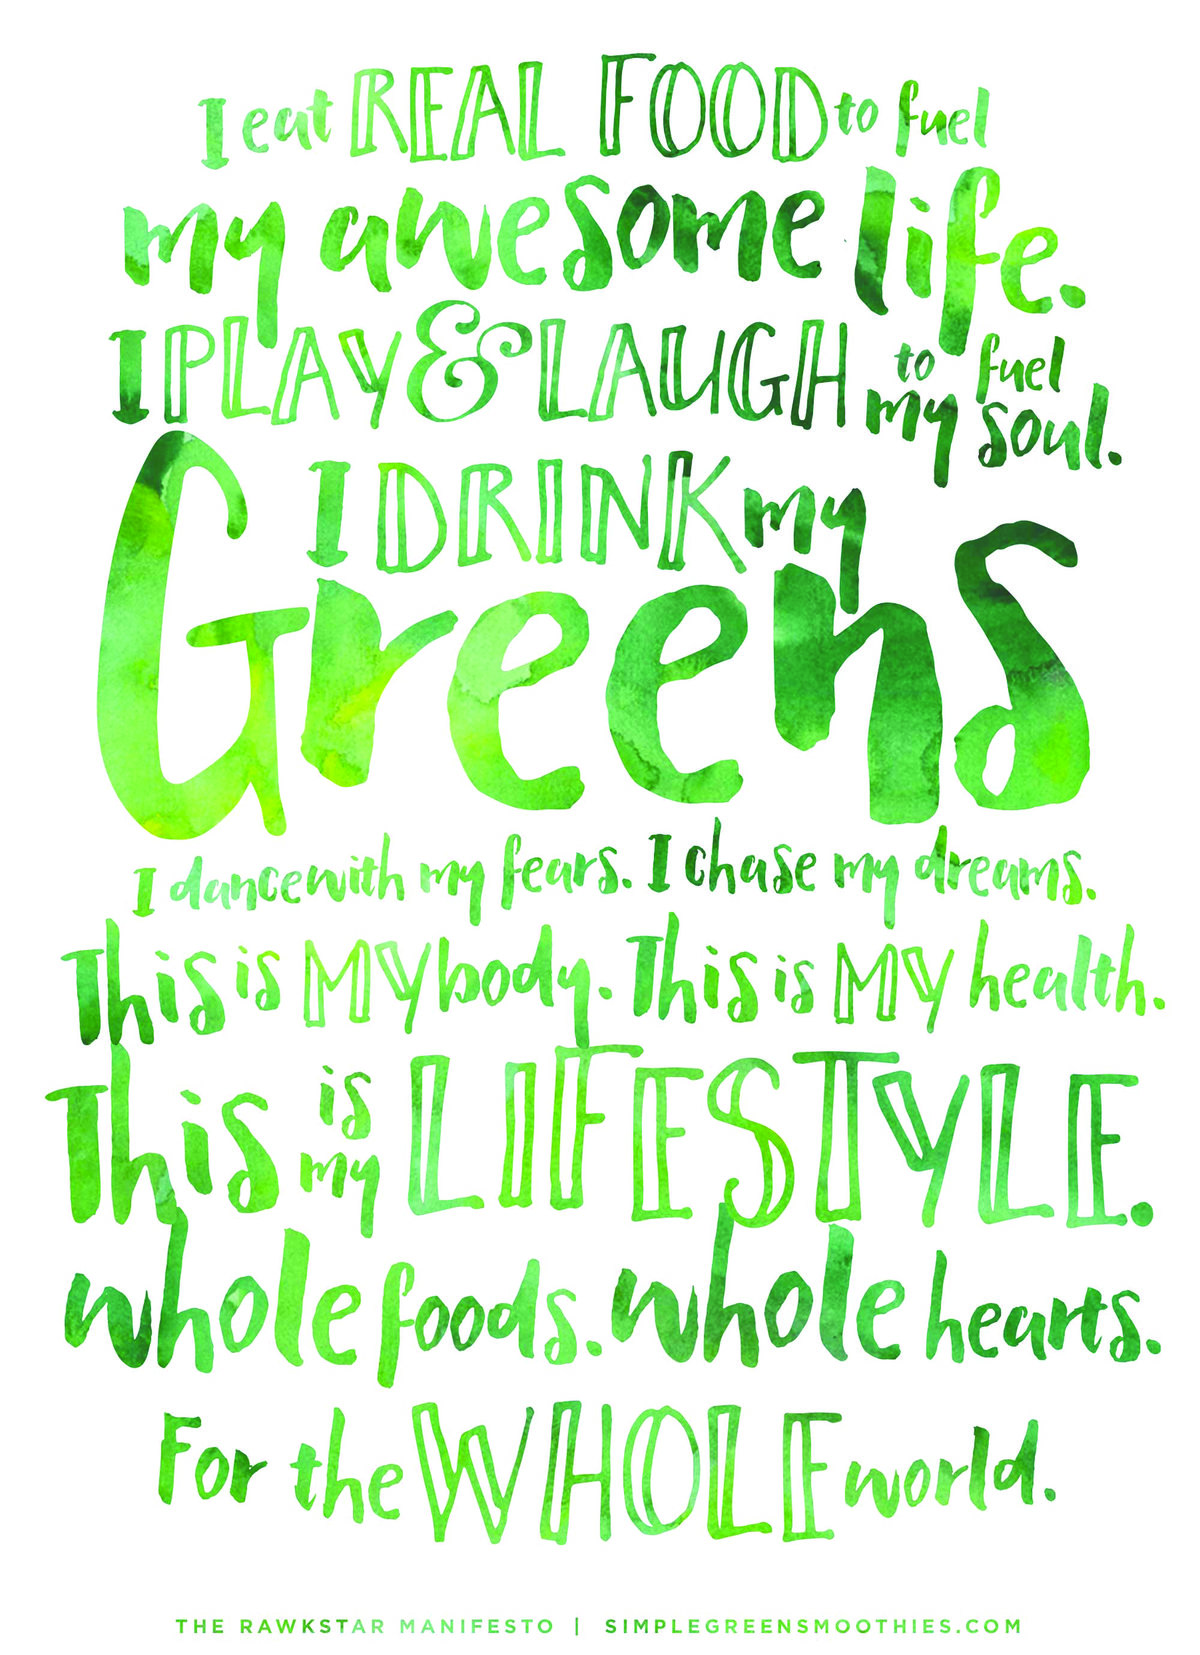 Simple-Green-Smoothie-Recipes-Rawkstar-Manifesto2